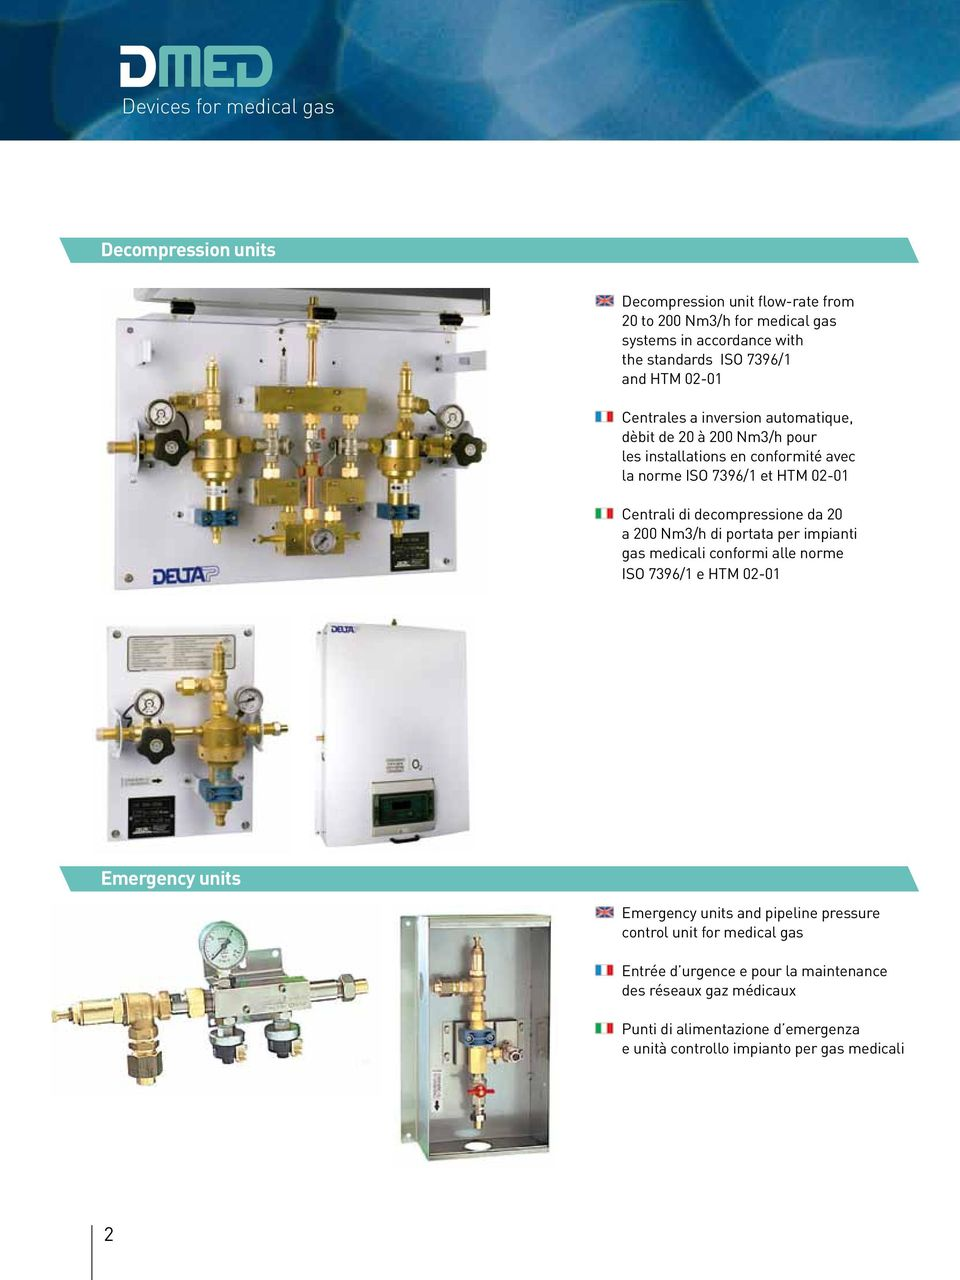 decompressione da 20 a 200 Nm3/h di portata per impianti gas medicali conformi alle norme ISO 7396/1 e HTM 02-01 Emergency units Emergency units and pipeline